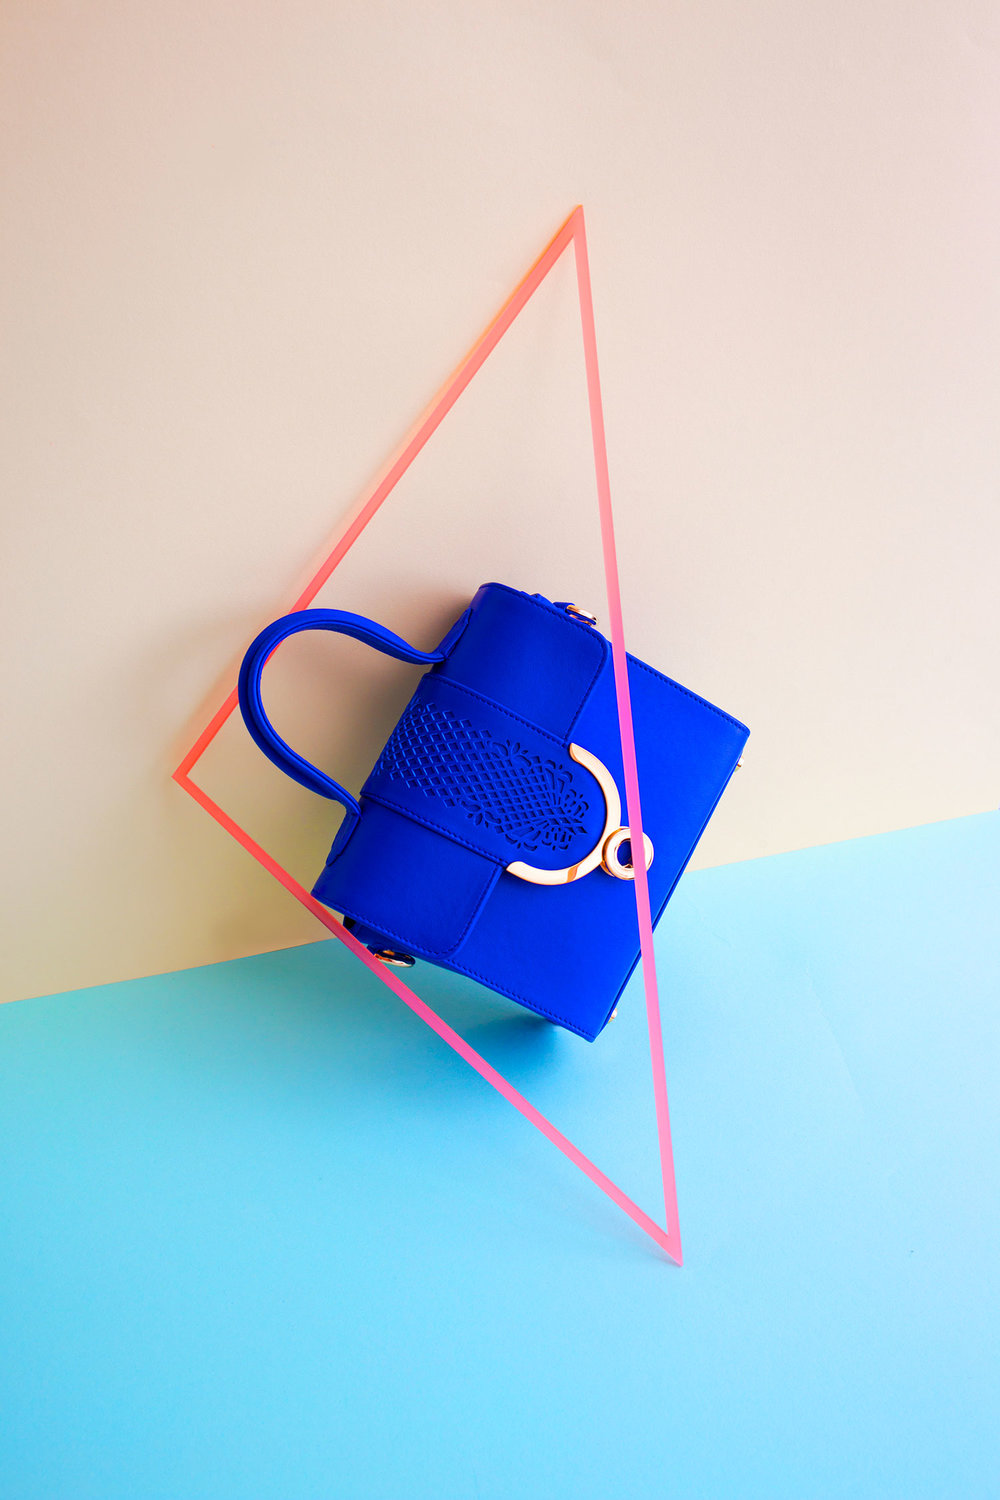 web-12-mini-blue-designer-shoulder-bag.jpg